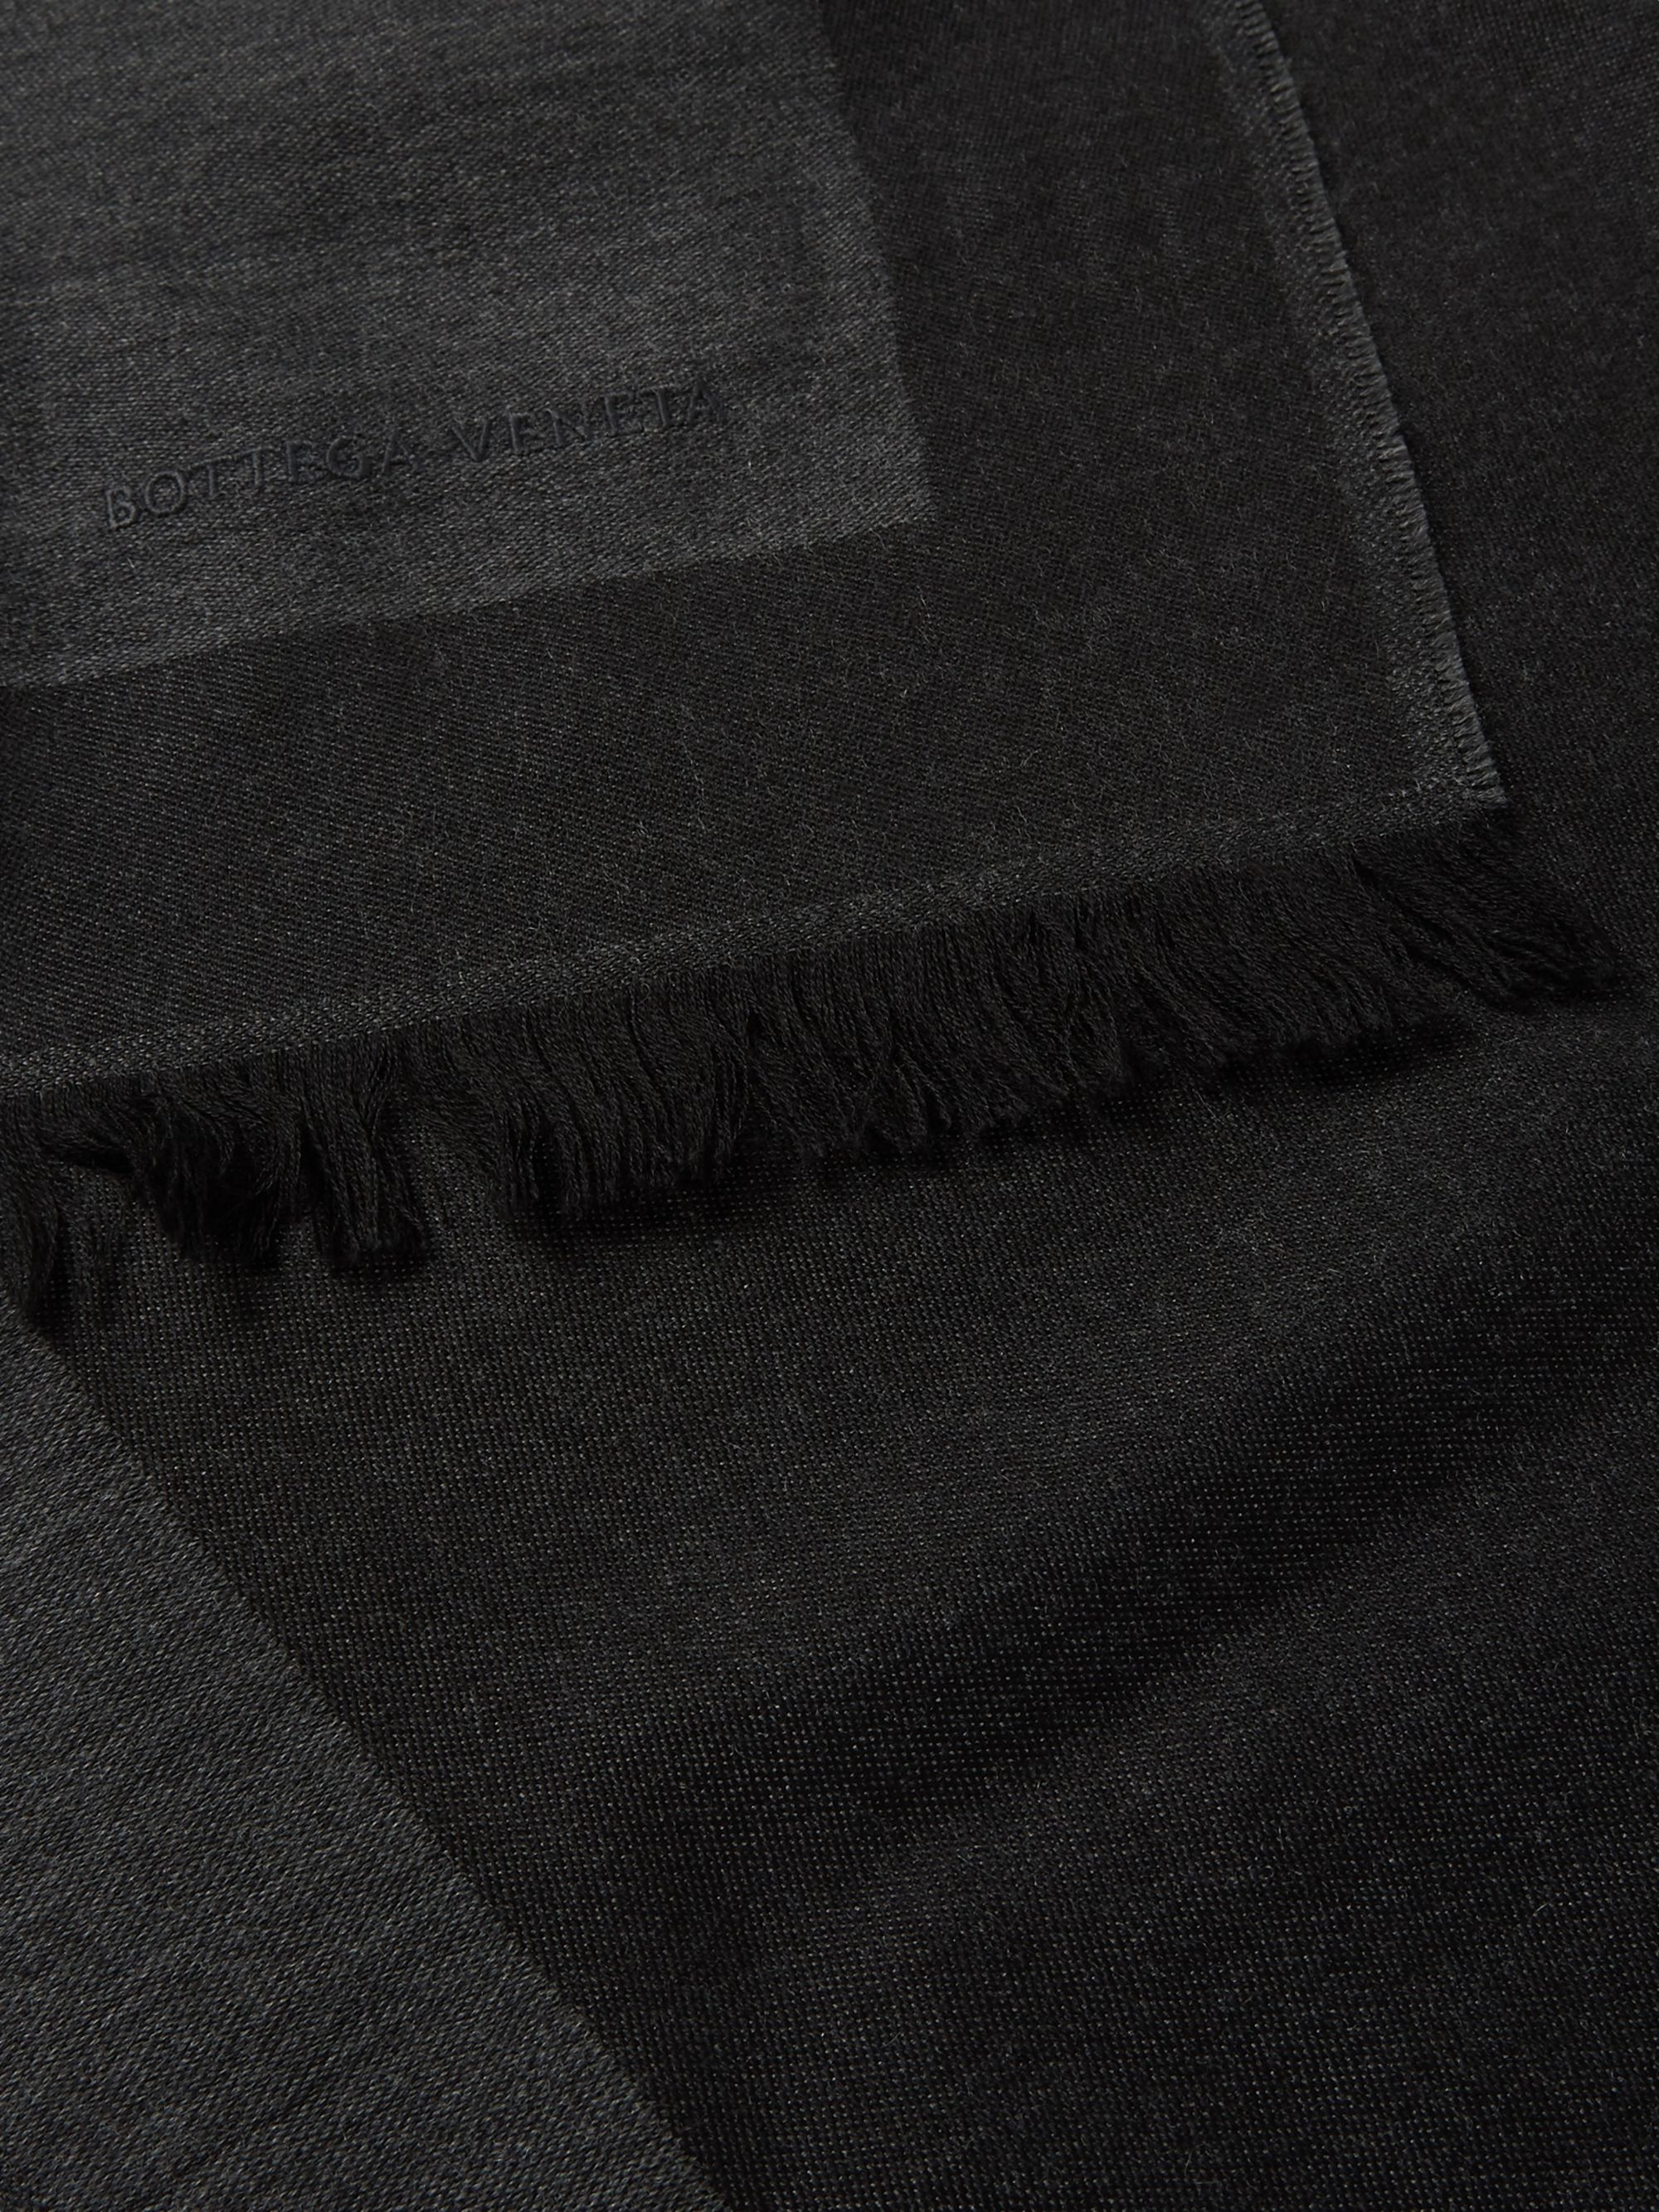 Bottega Veneta Wool, Cashmere and Silk-Blend Scarf